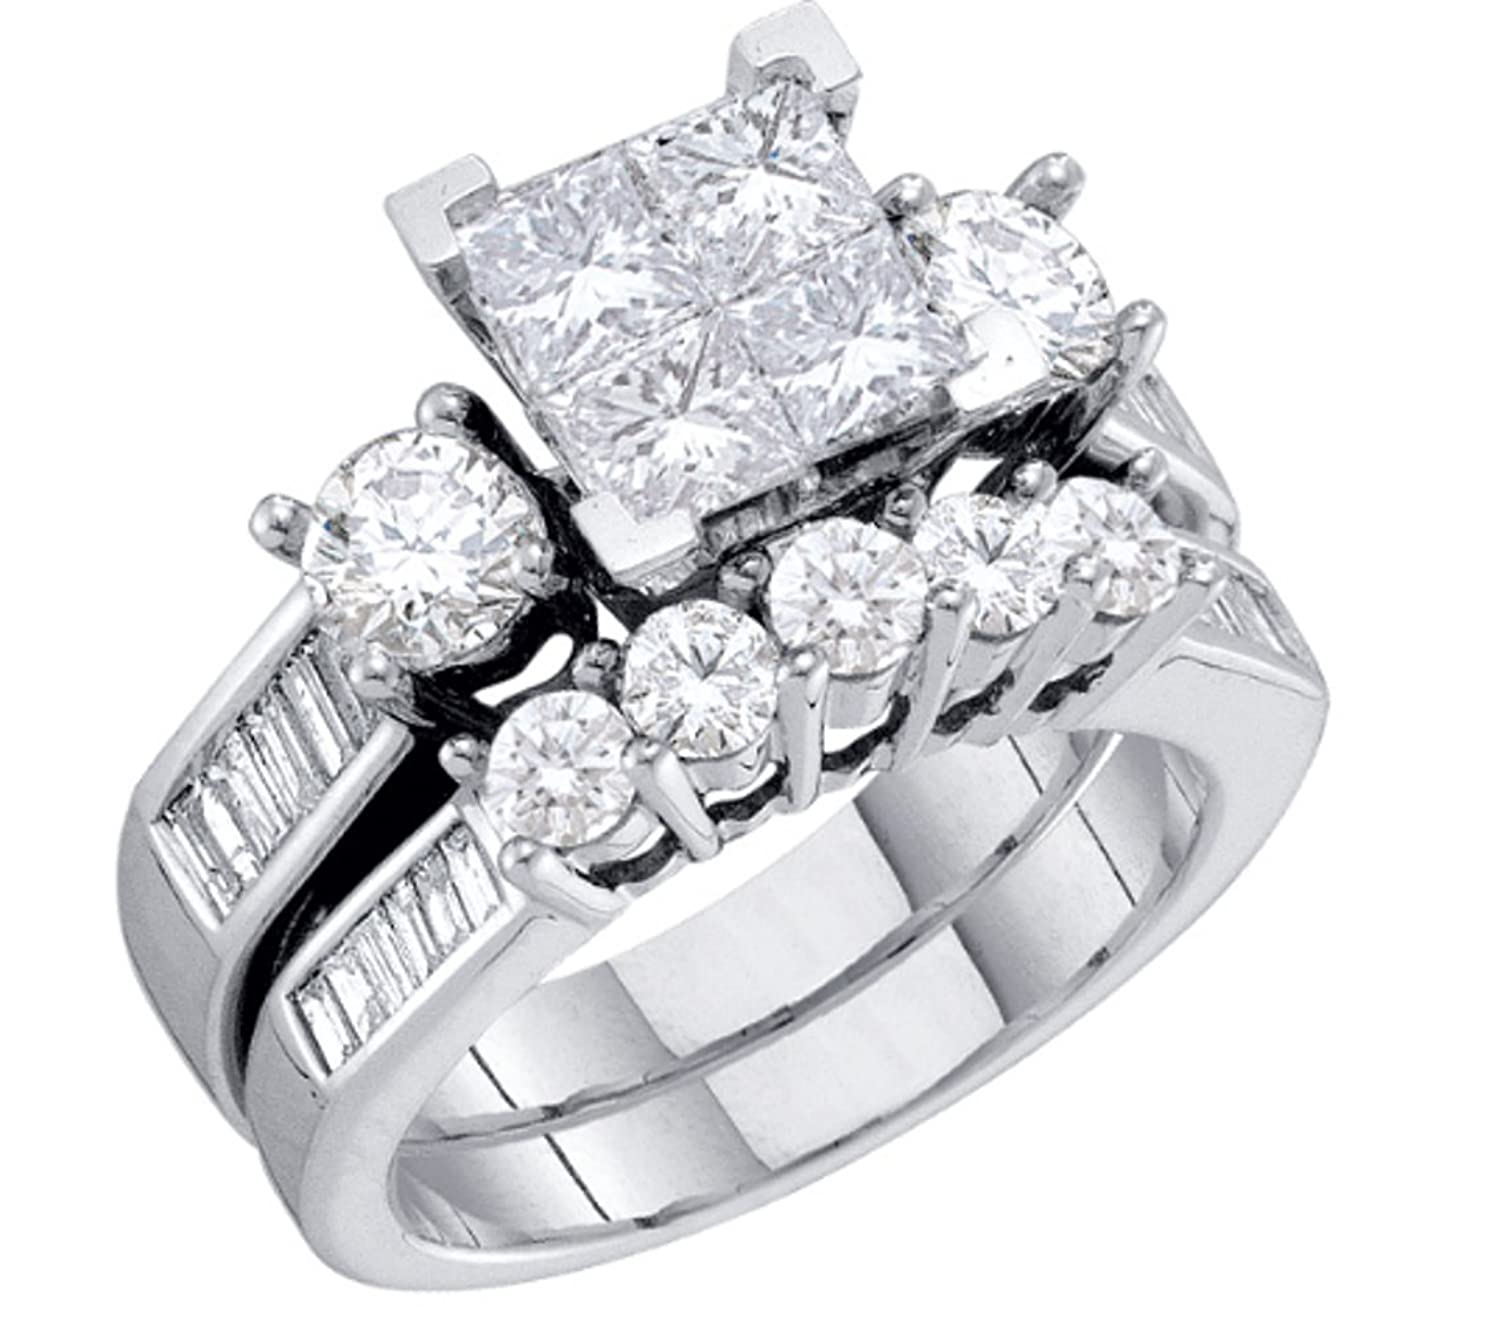 Amazon Rings MidwestJewellery 10k White Gold Bridal Rings Set